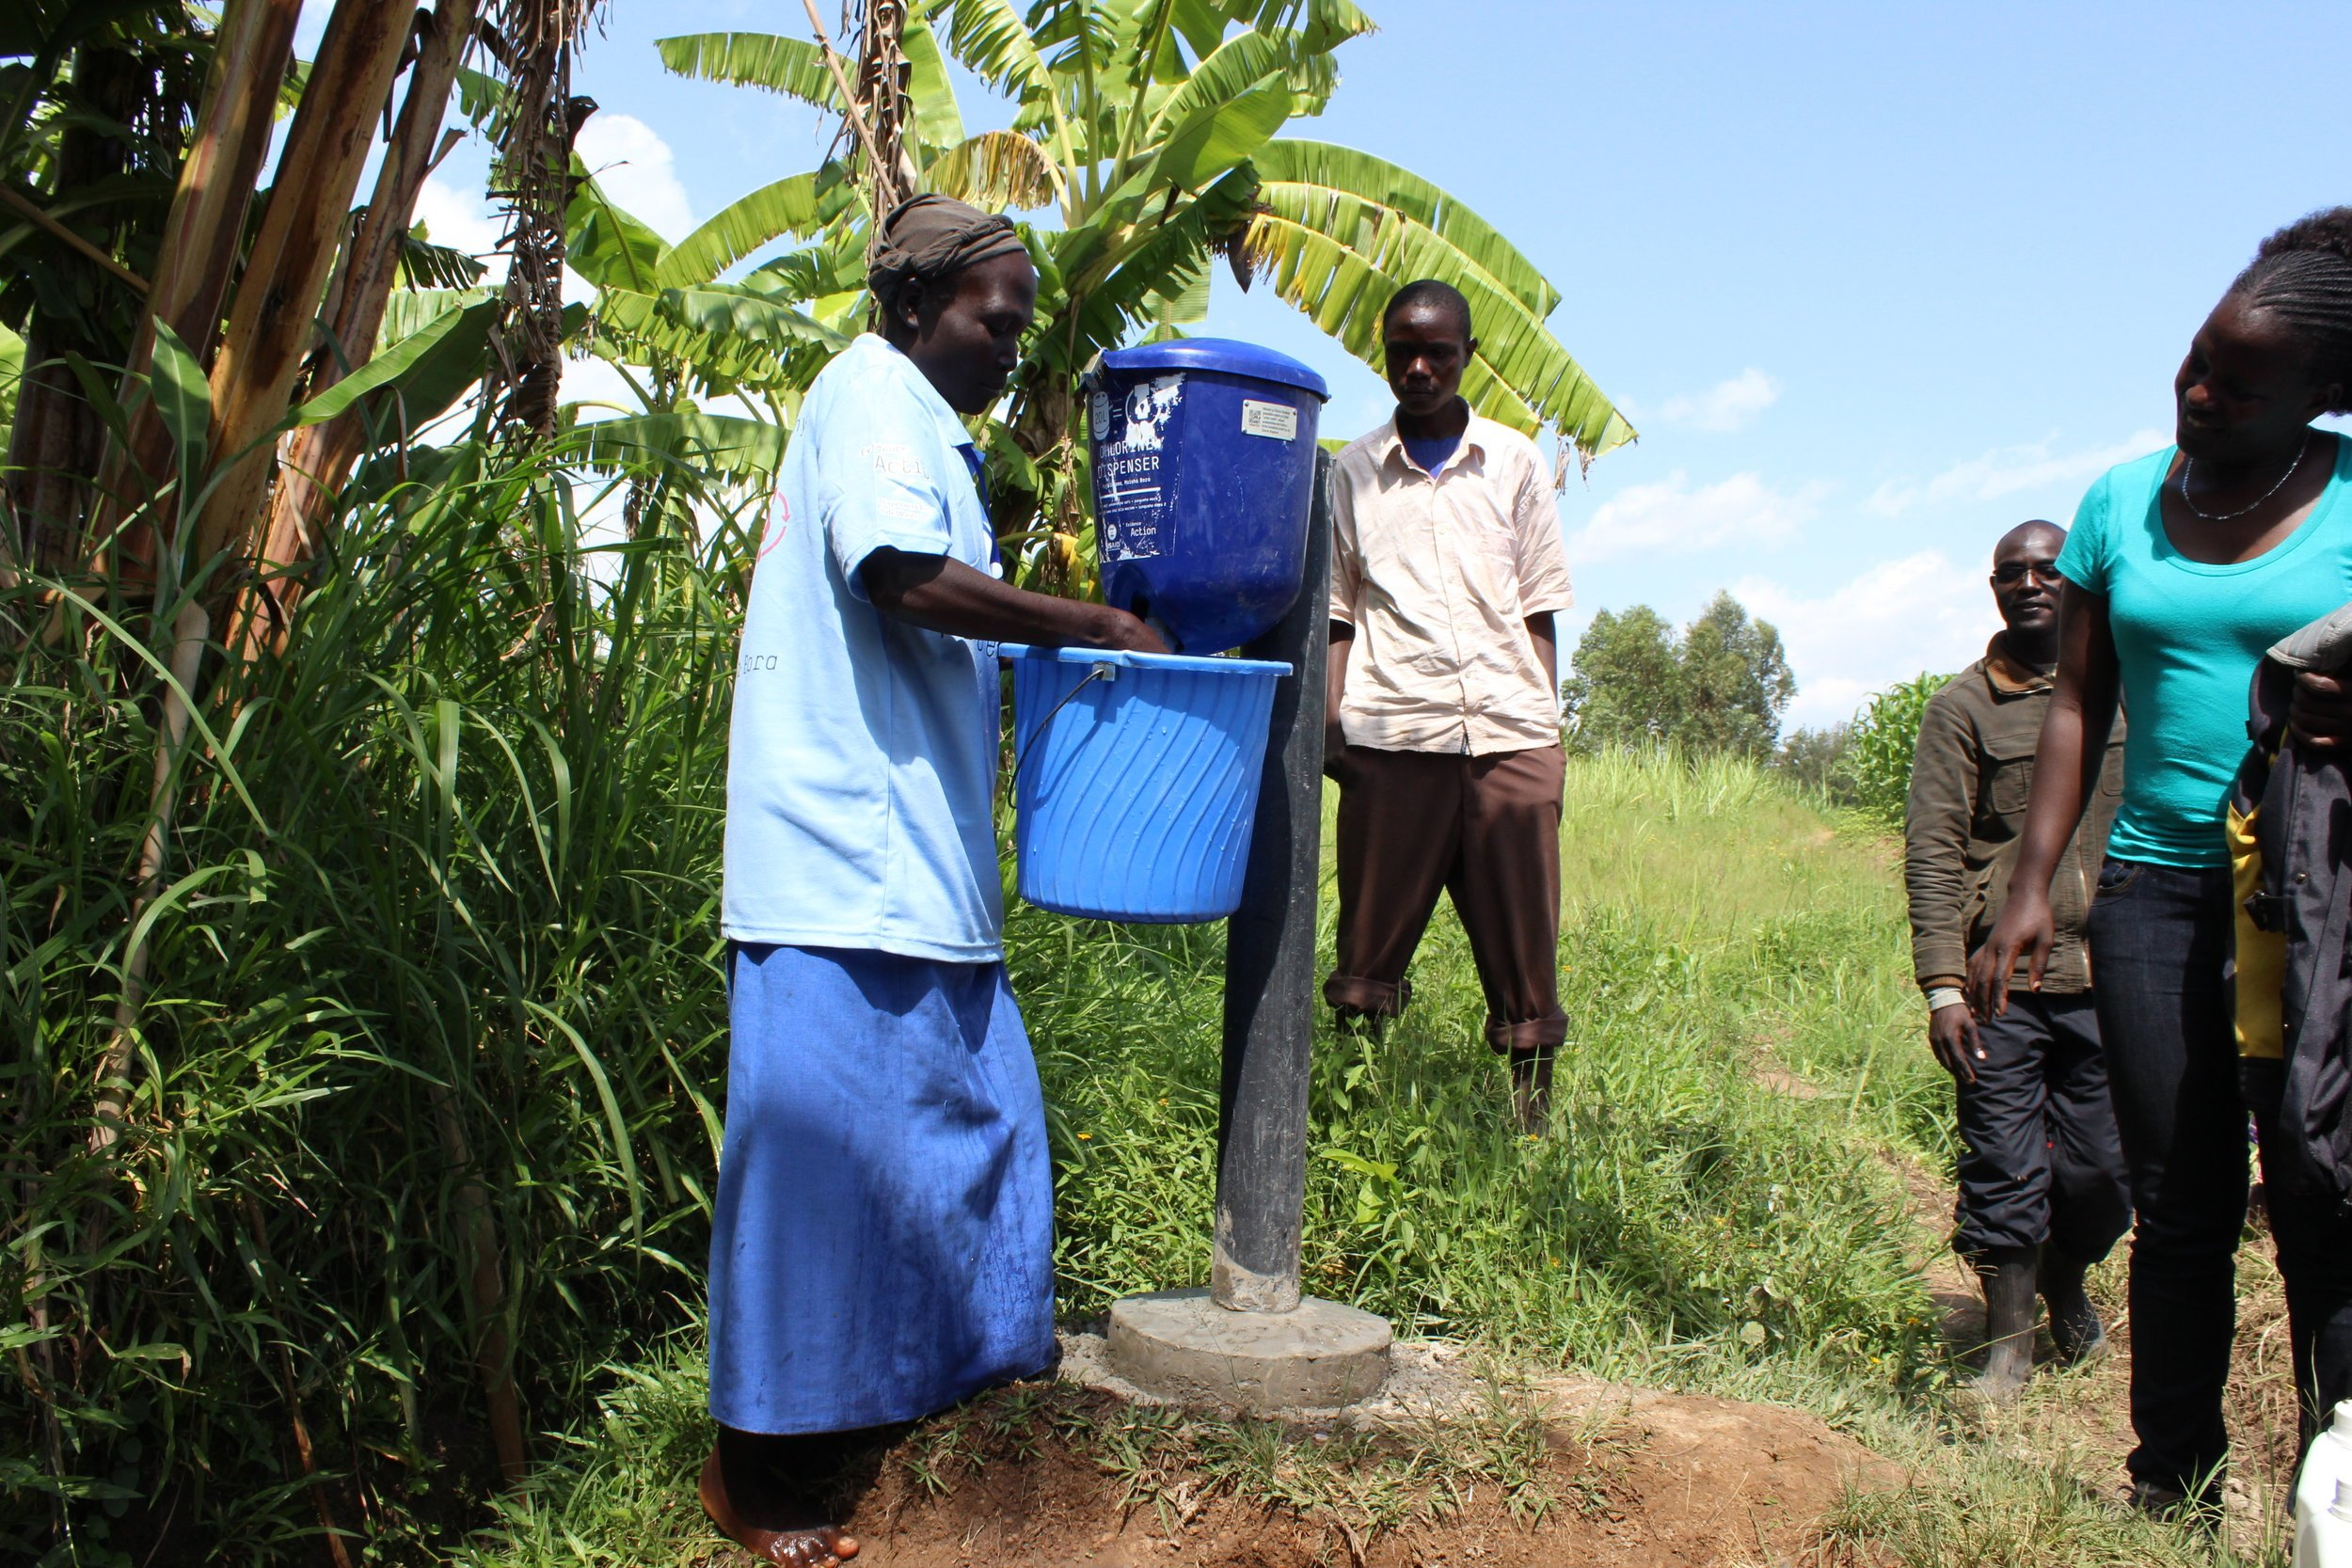 Dispensers for Safe Water: An Updated Review of the Evidence